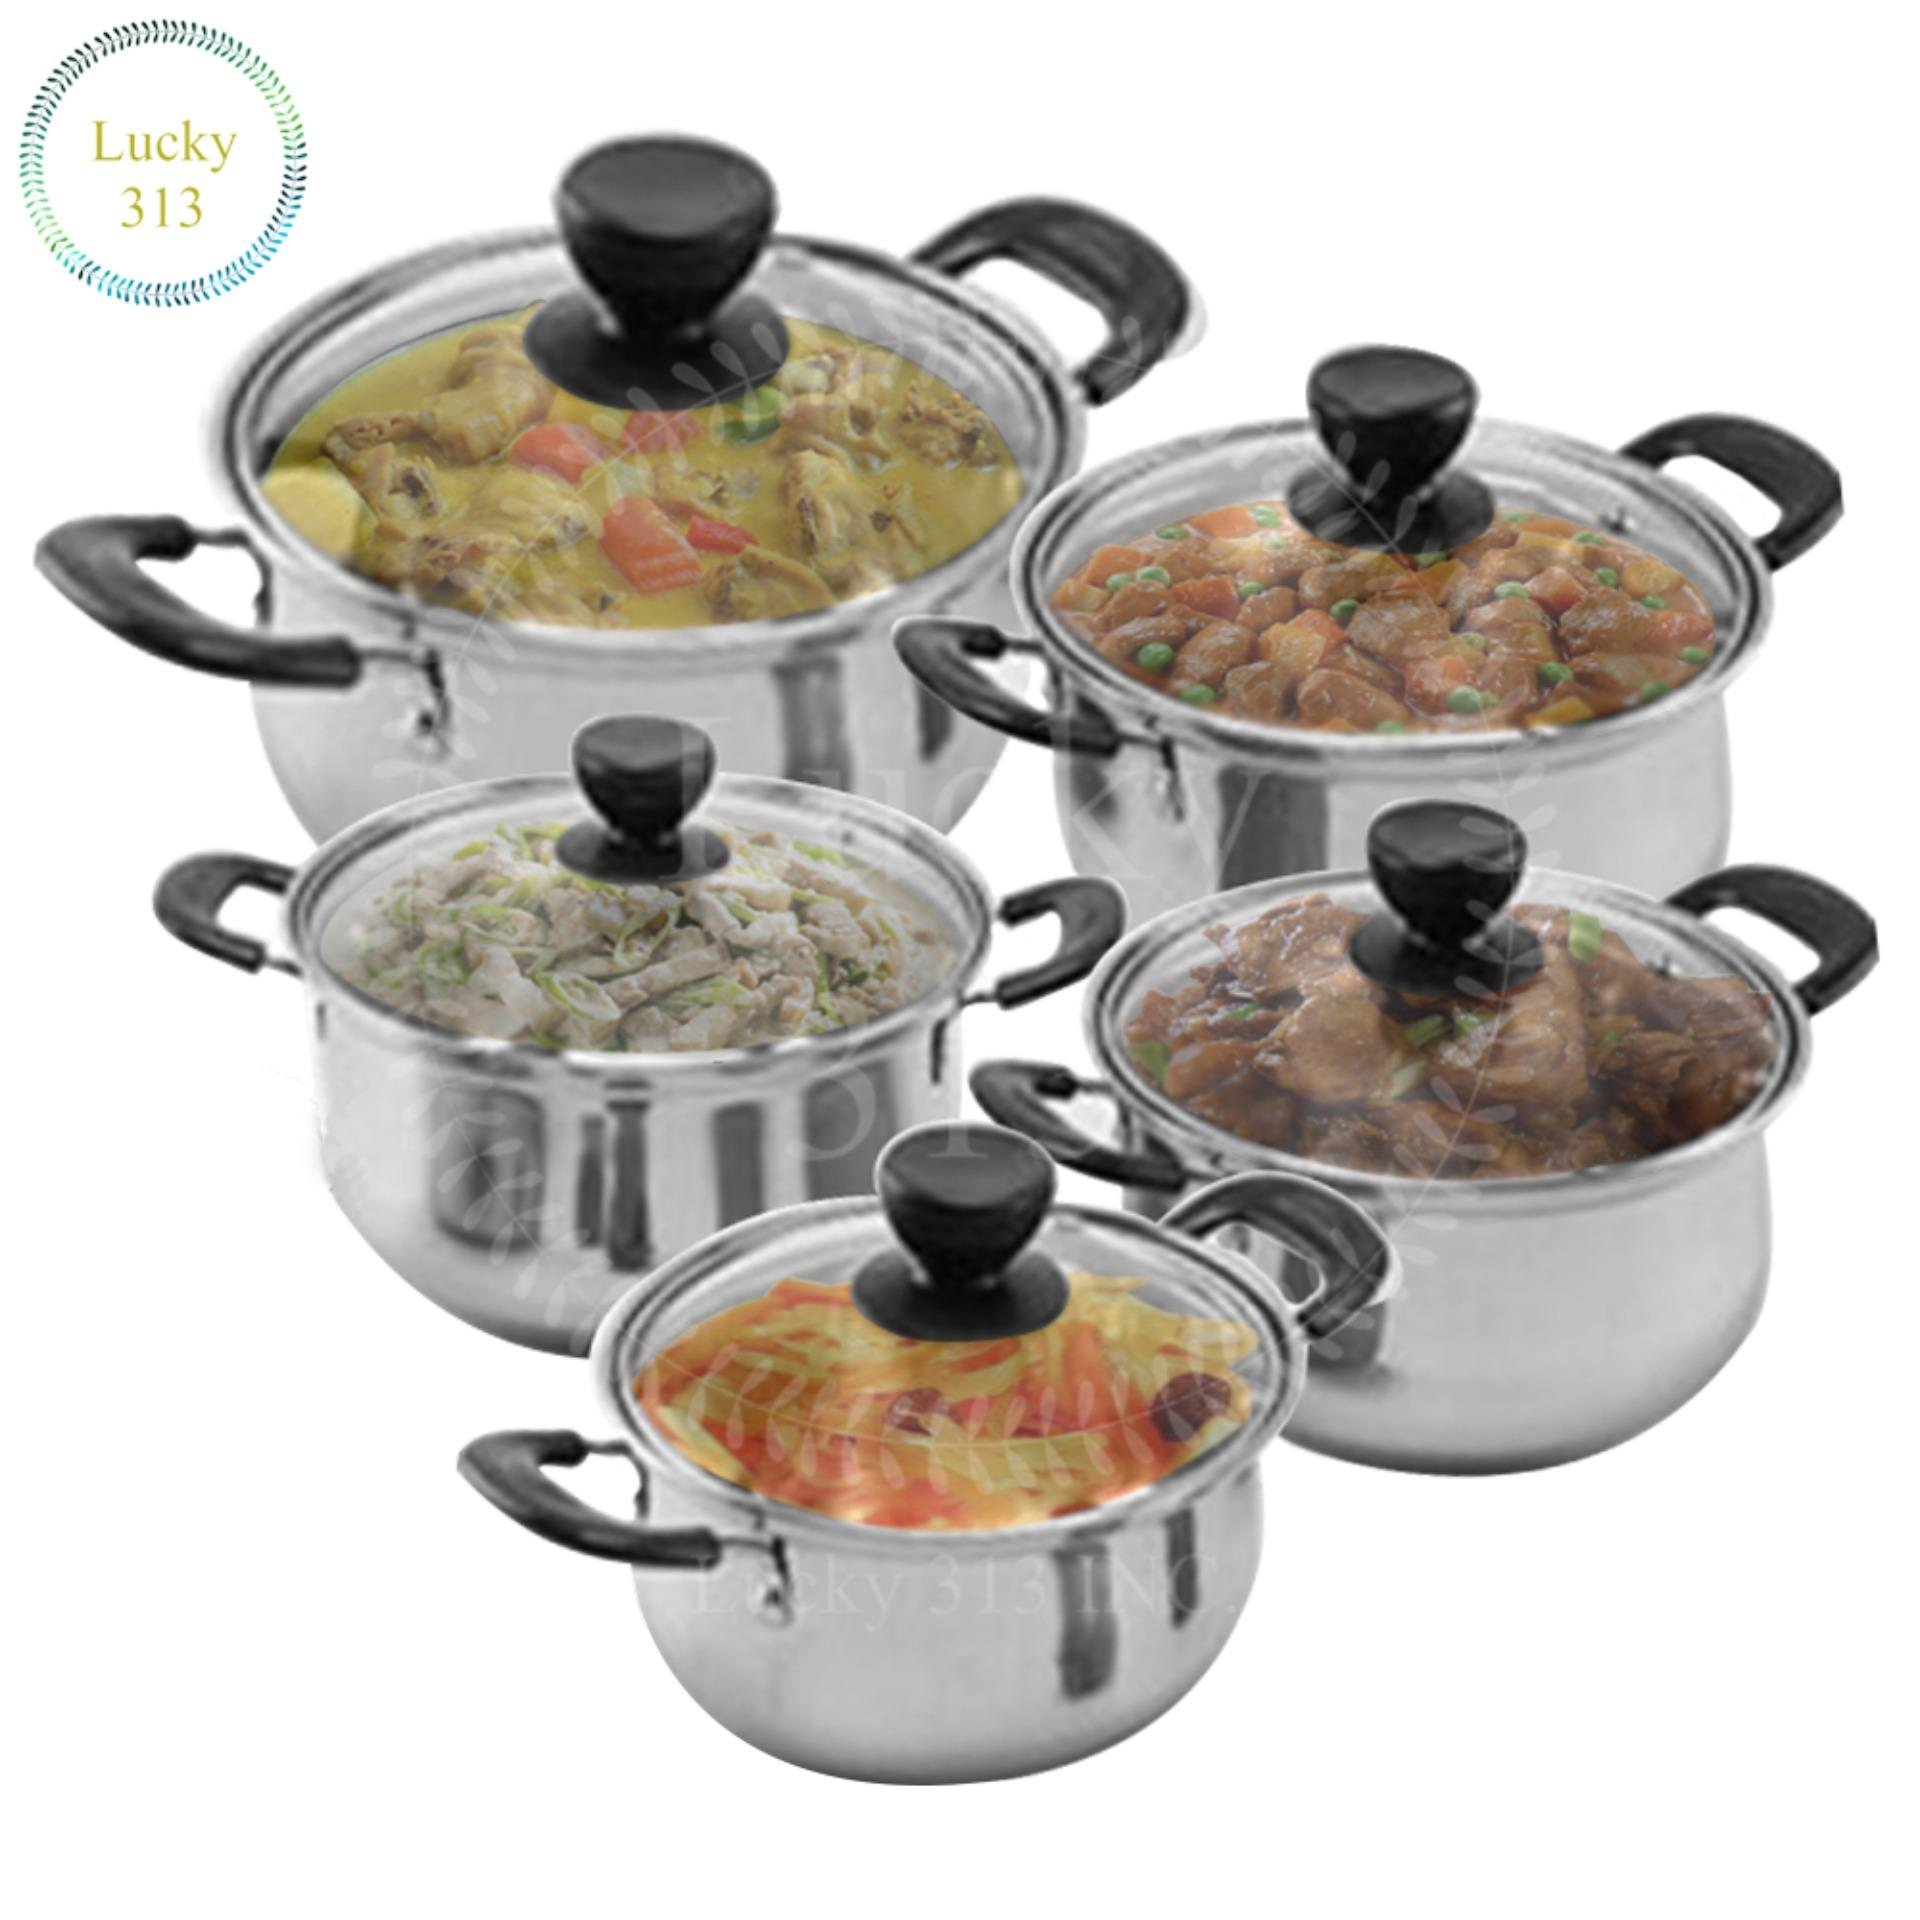 Big W Stock Pot Stainless Steel Cookware Stockpot Sets 5pcs Glass Cover